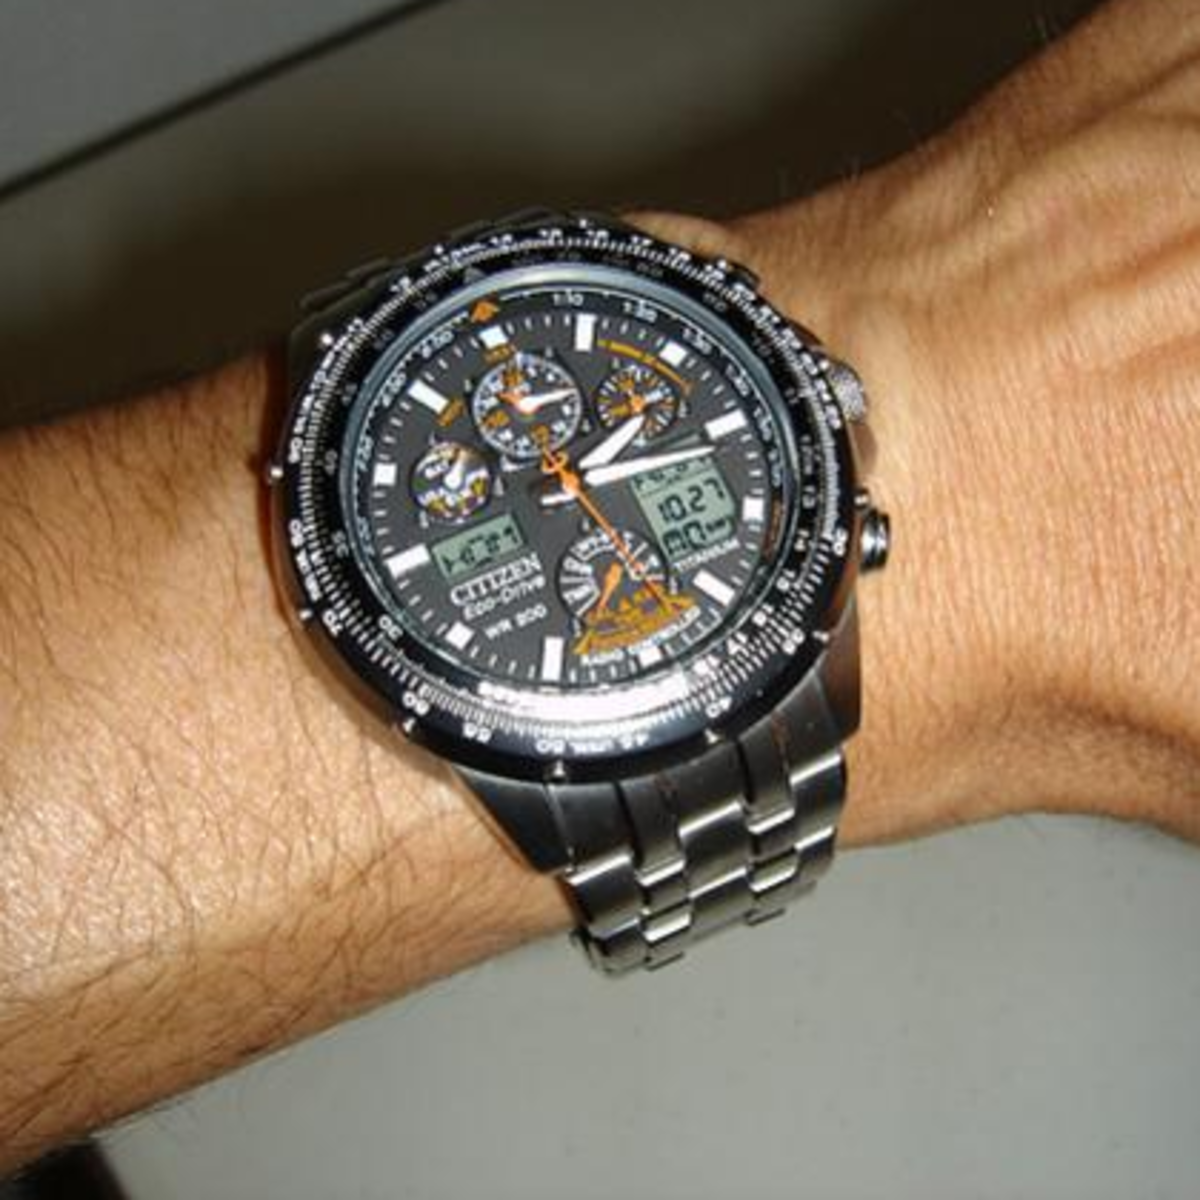 As you can see in the, picture this watch looks good even with a medium-sized flat wrist.